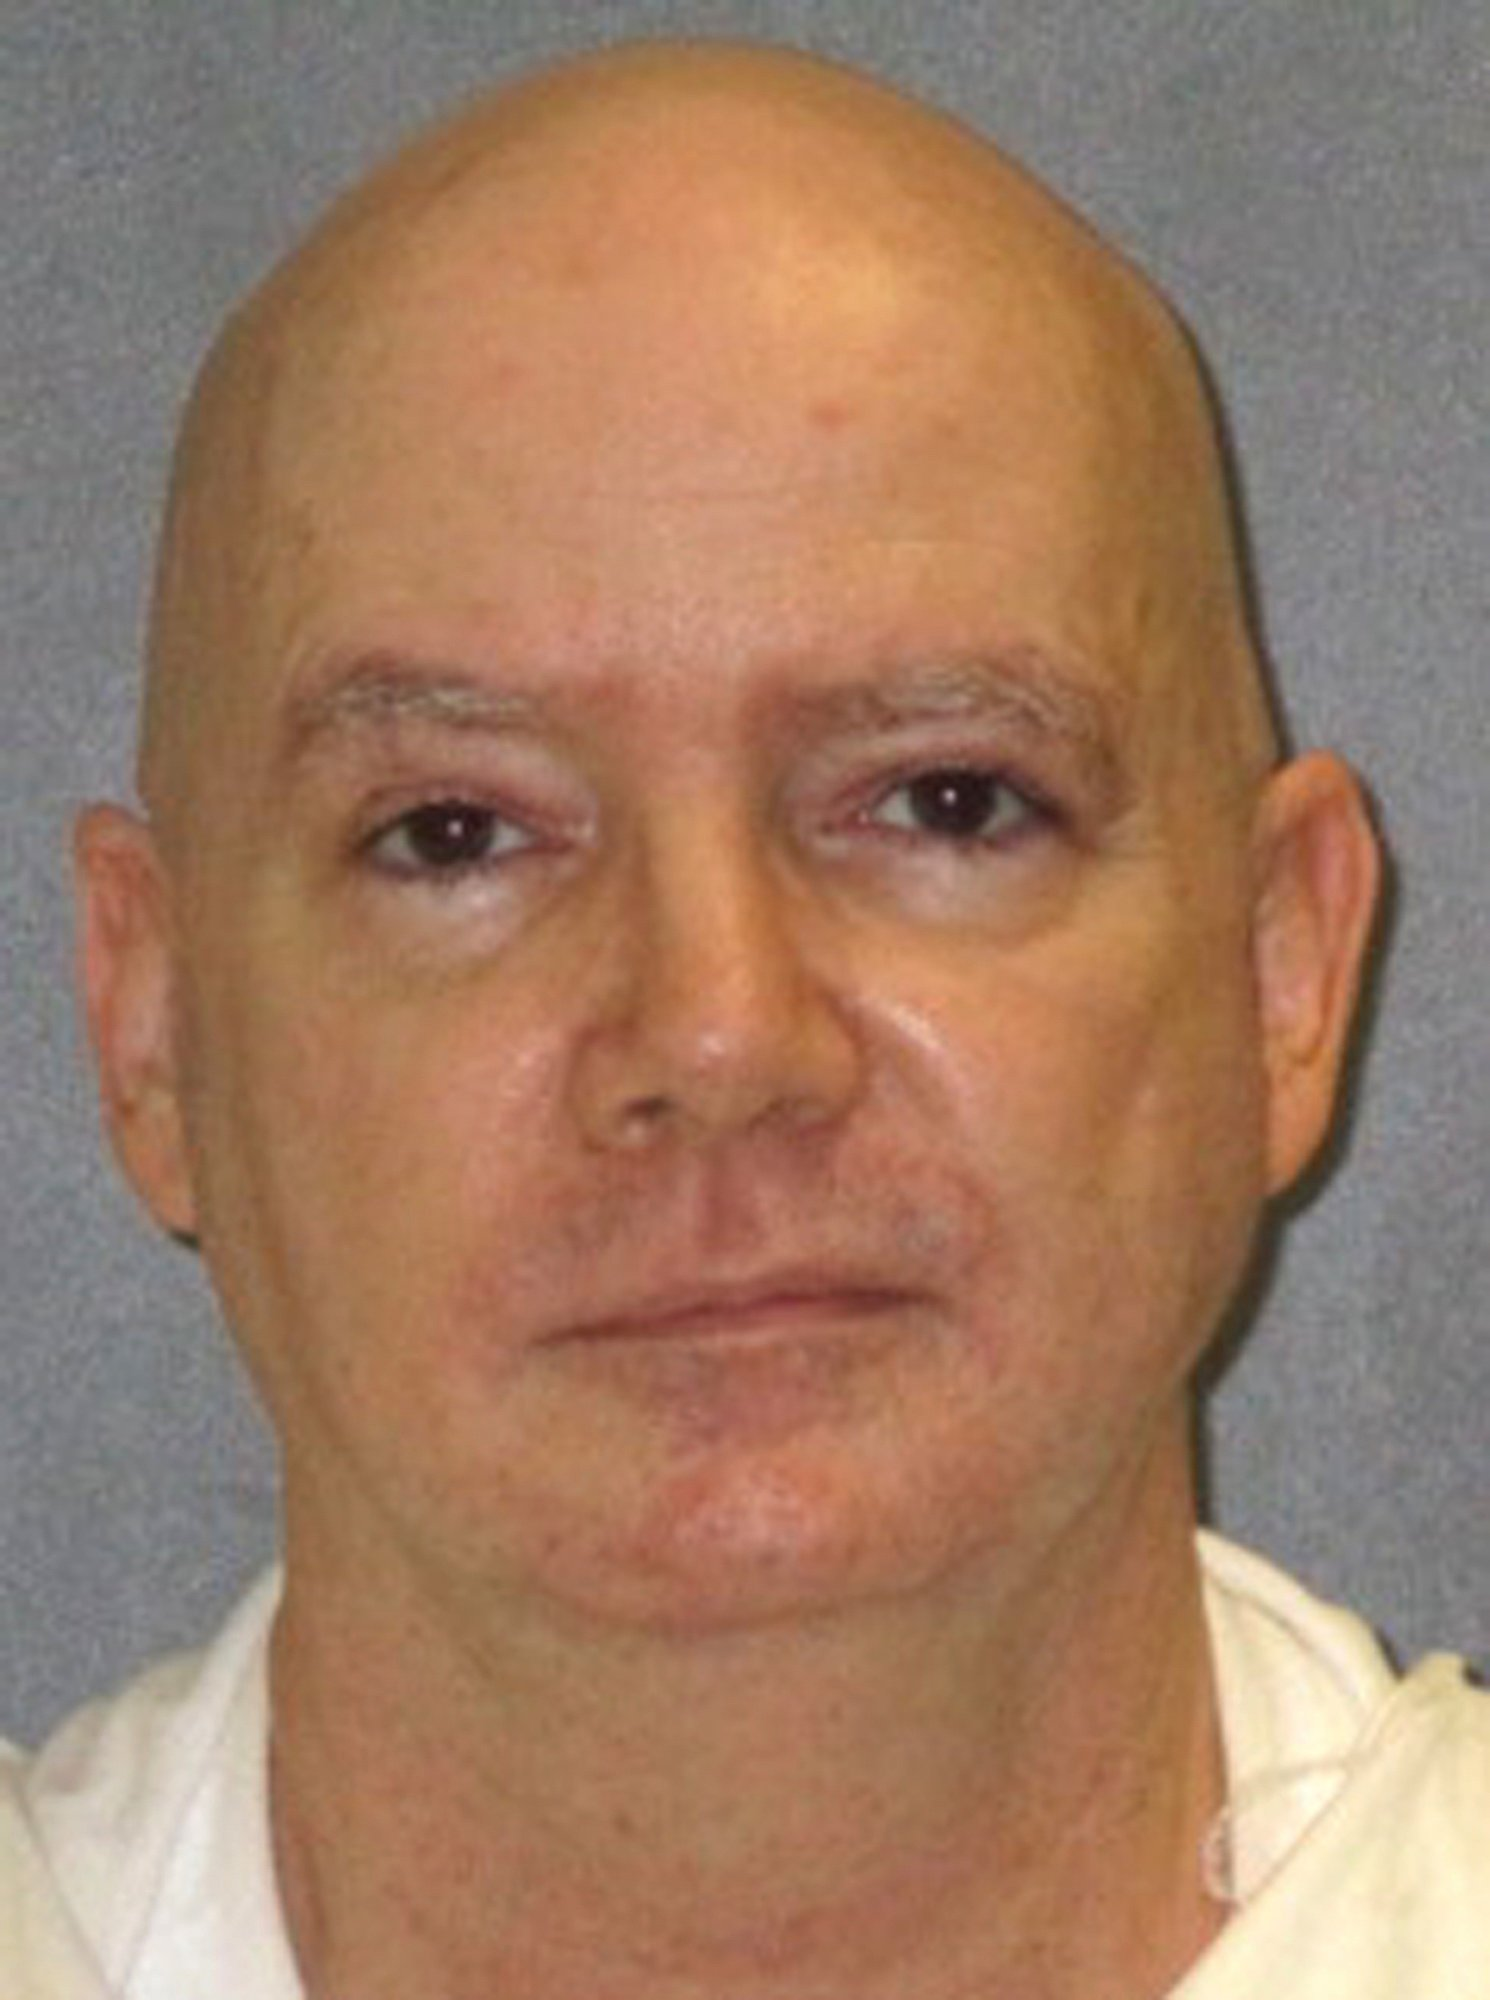 judge grants 90 day stay of execution for tourniquet killer